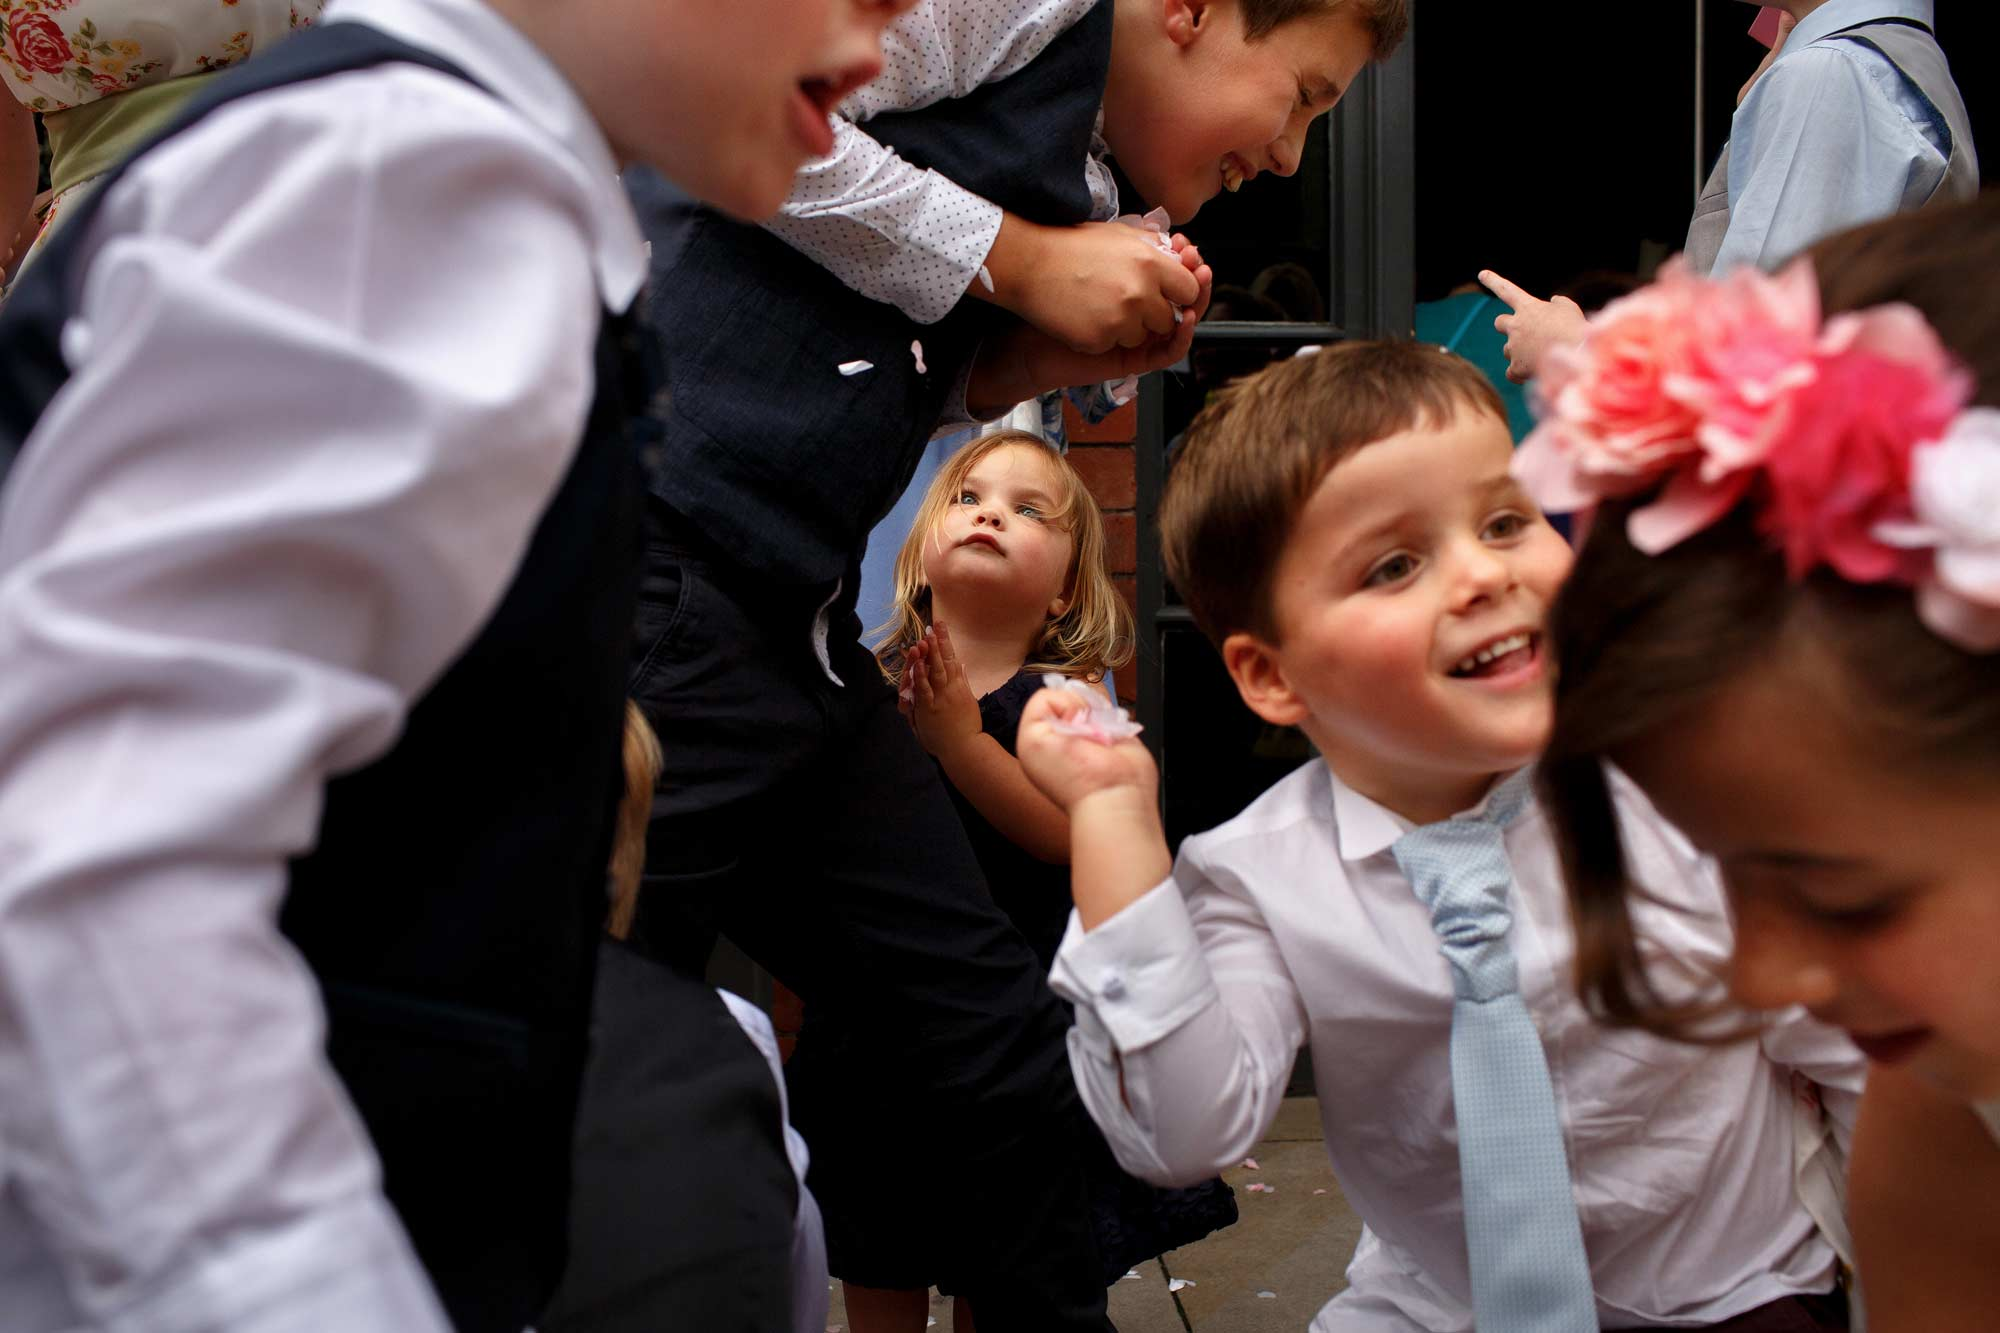 Children having a confetti fight during a wedding at Great John Street Hotel